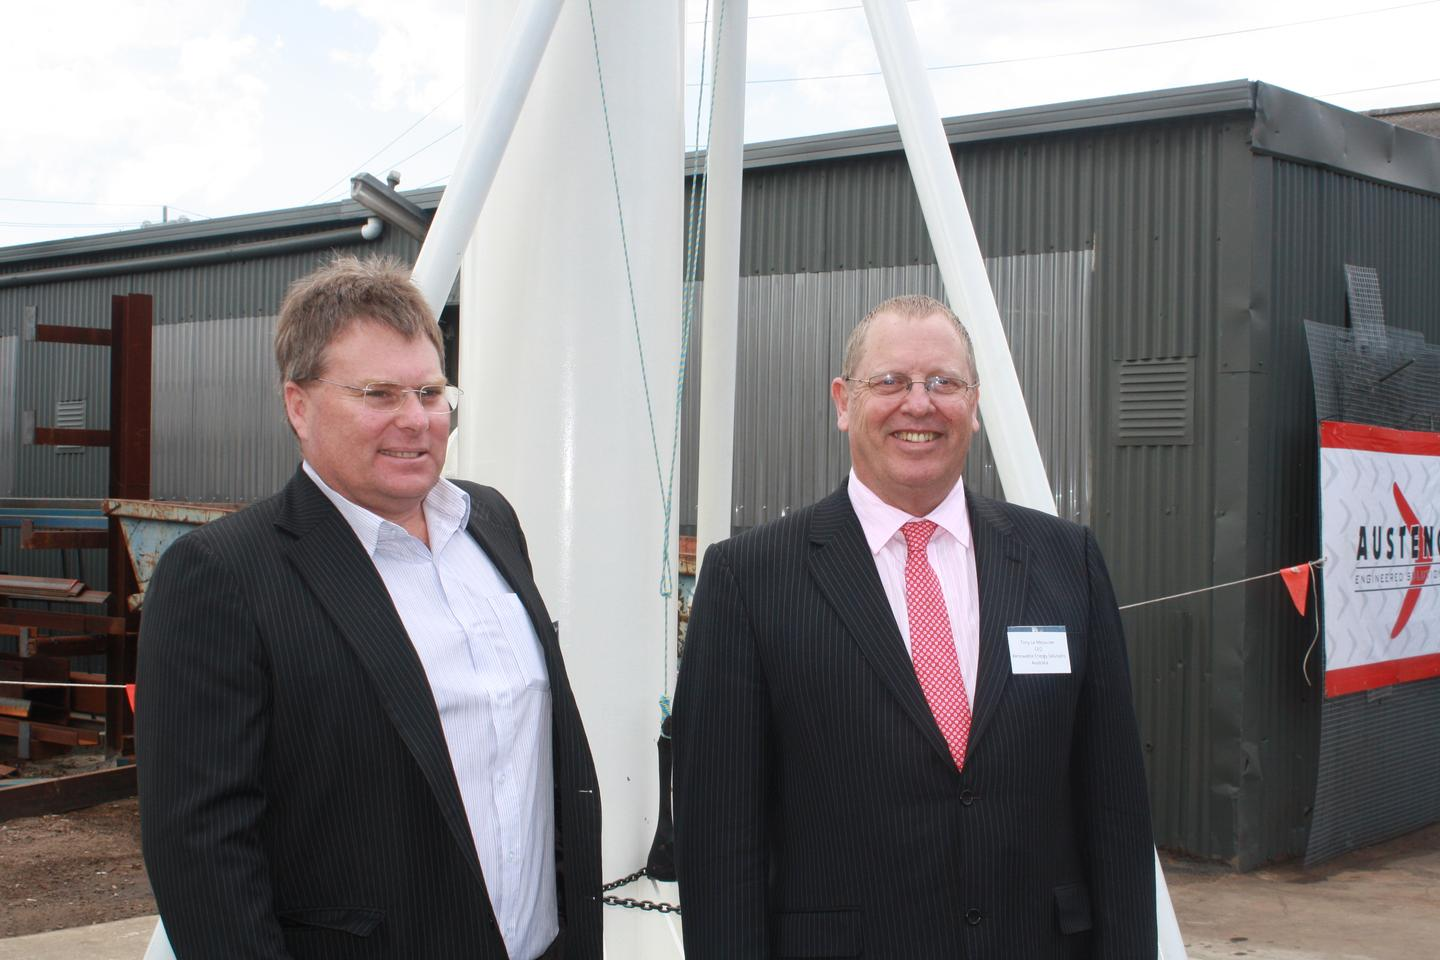 Councilor Rod MacDonald, City of Greater Geelong pictured with Tony Le Messurier, CEO of Renewable Energy Solutions Australia Holdings Ltd at the unveiling of the Eco Whisper Turbine